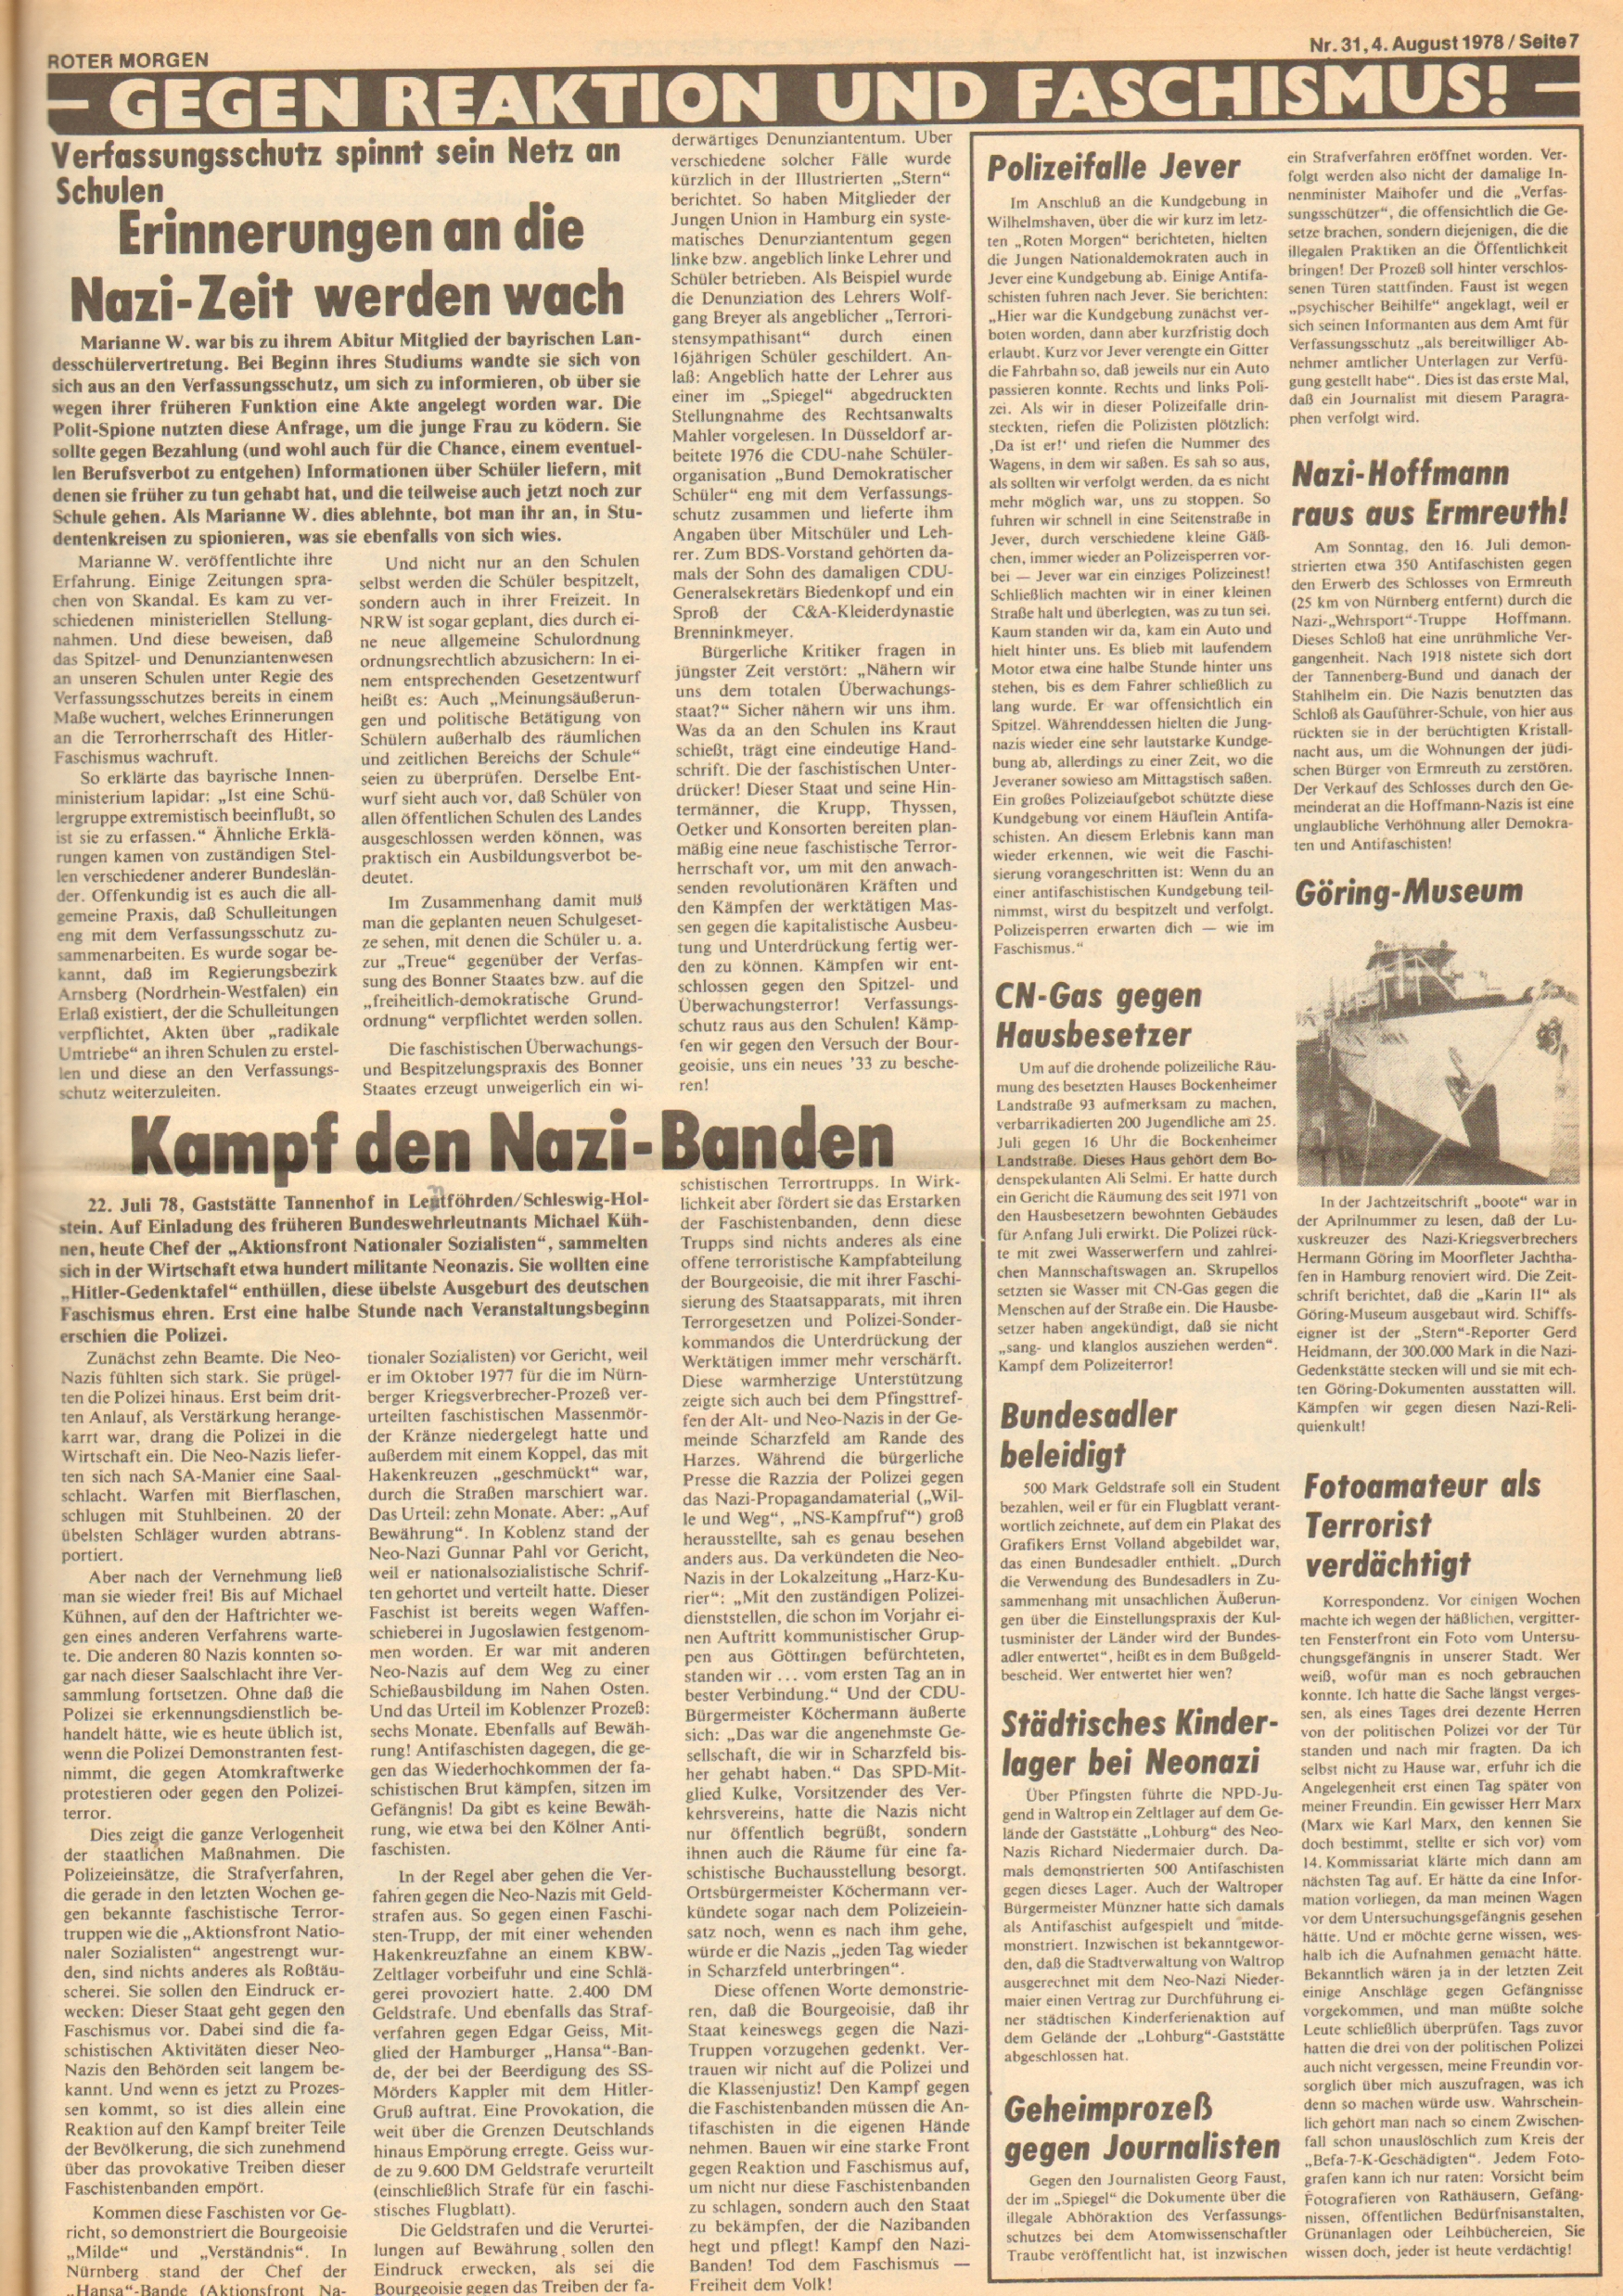 Roter Morgen, 12. Jg., 4. August 1978, Nr. 31, Seite 7